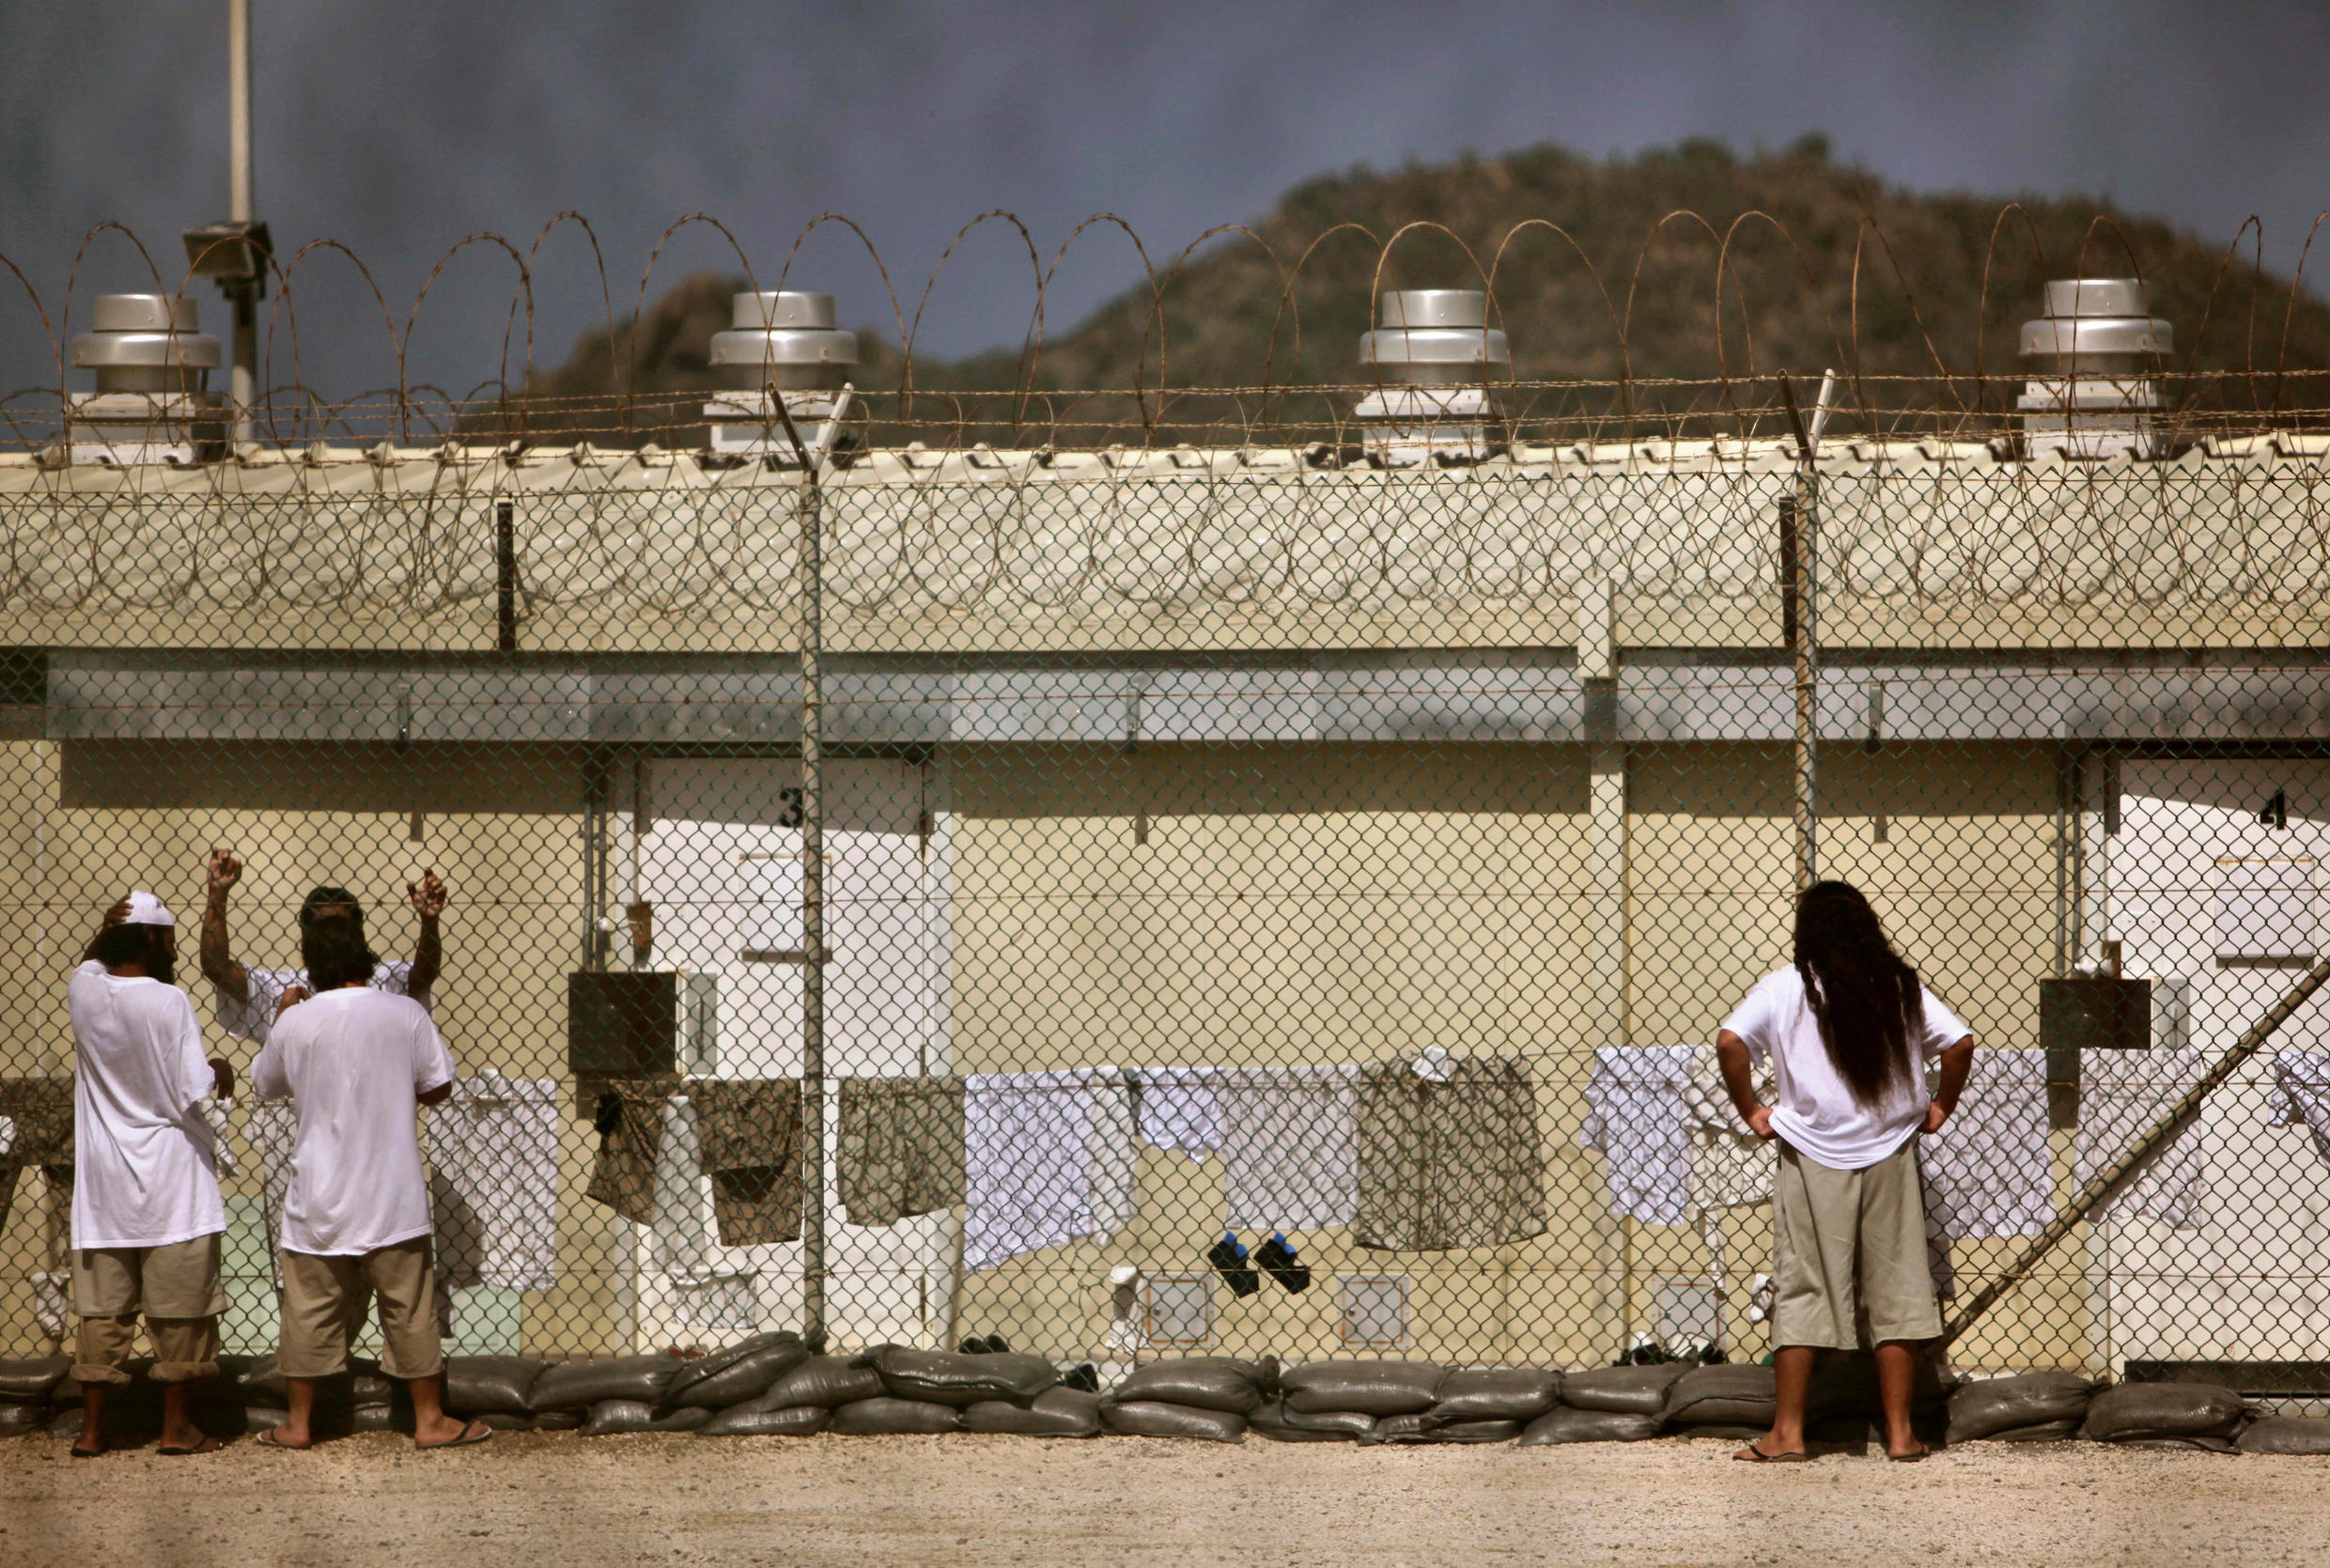 Detainees in the open-air yard at the Camp 4 detention facility at Guantanamo Bay in 2009